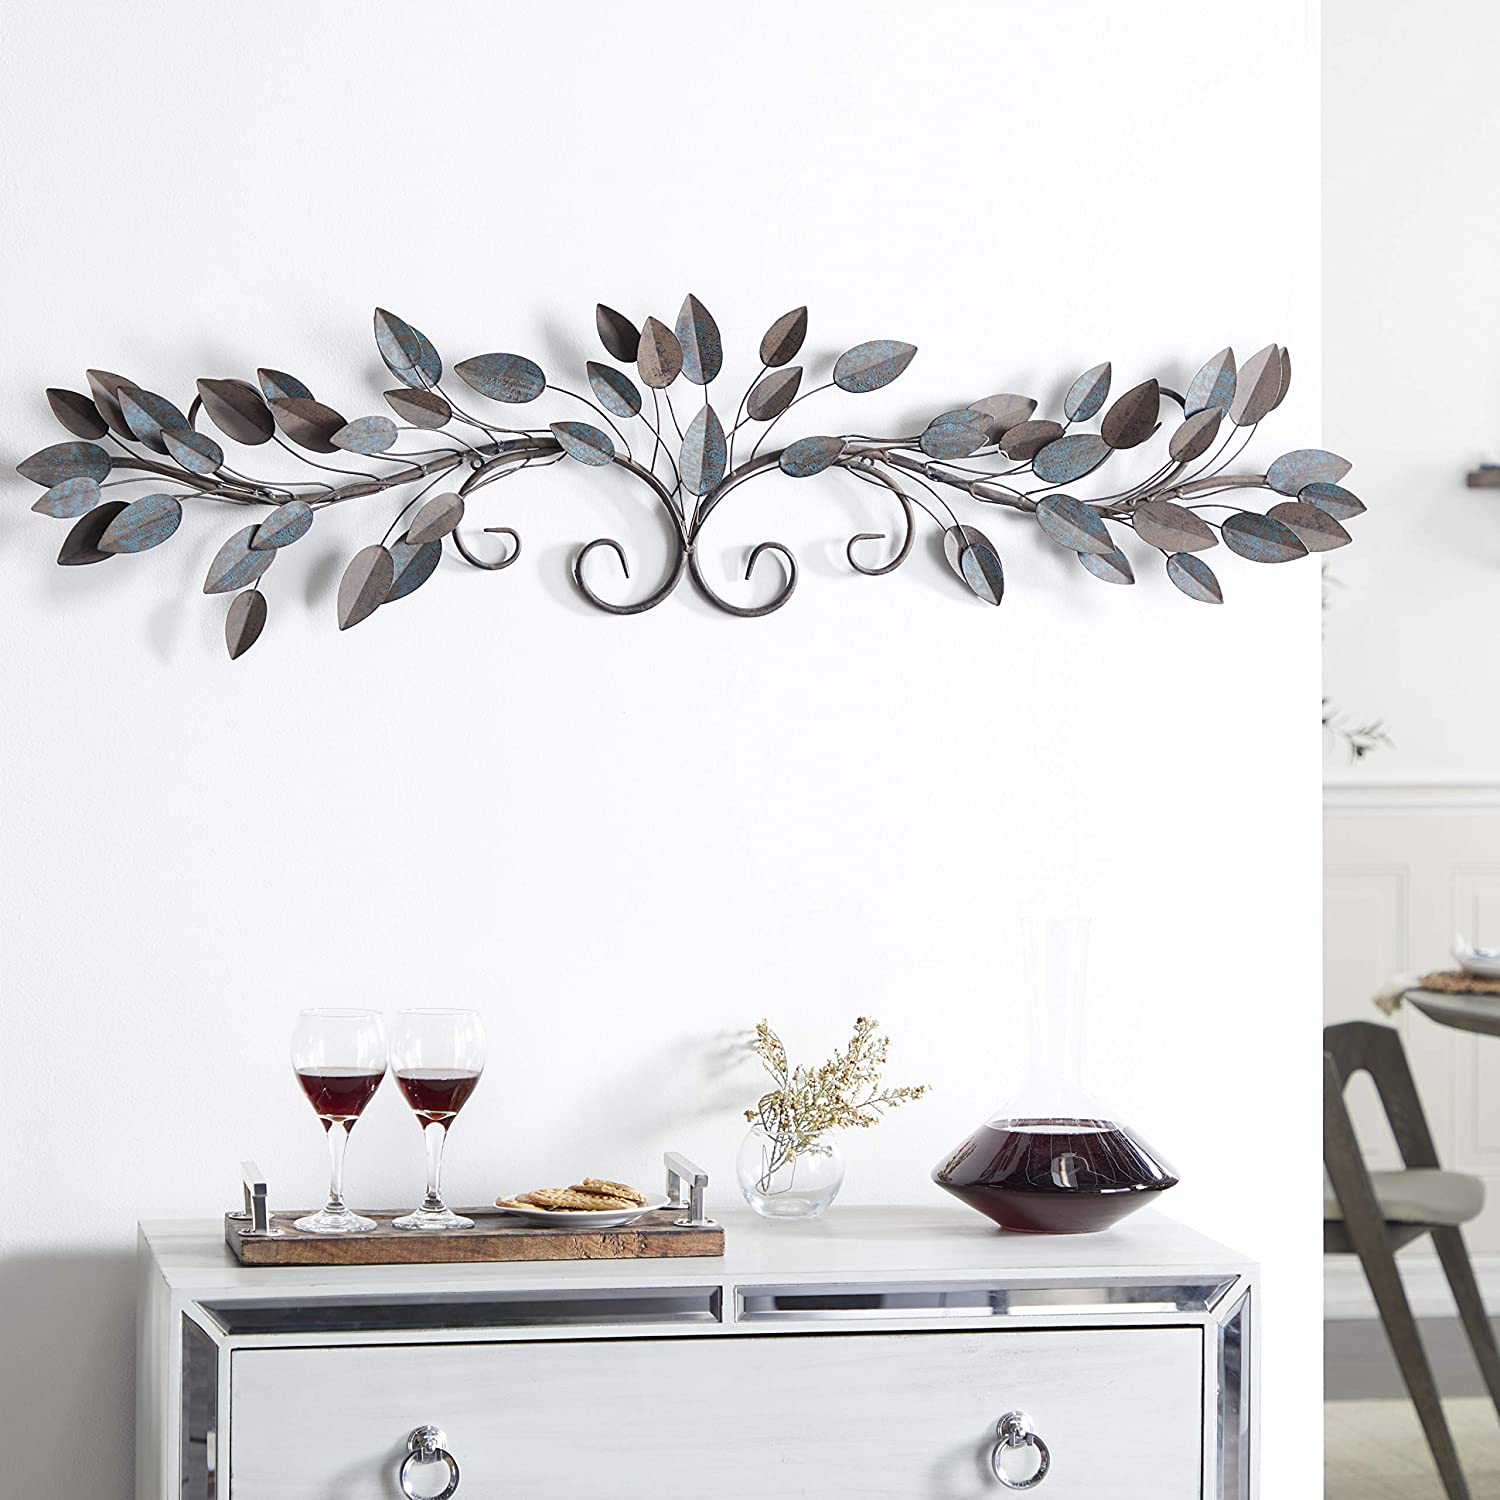 Deco 79 Metal Wall Decor, 51 by 12